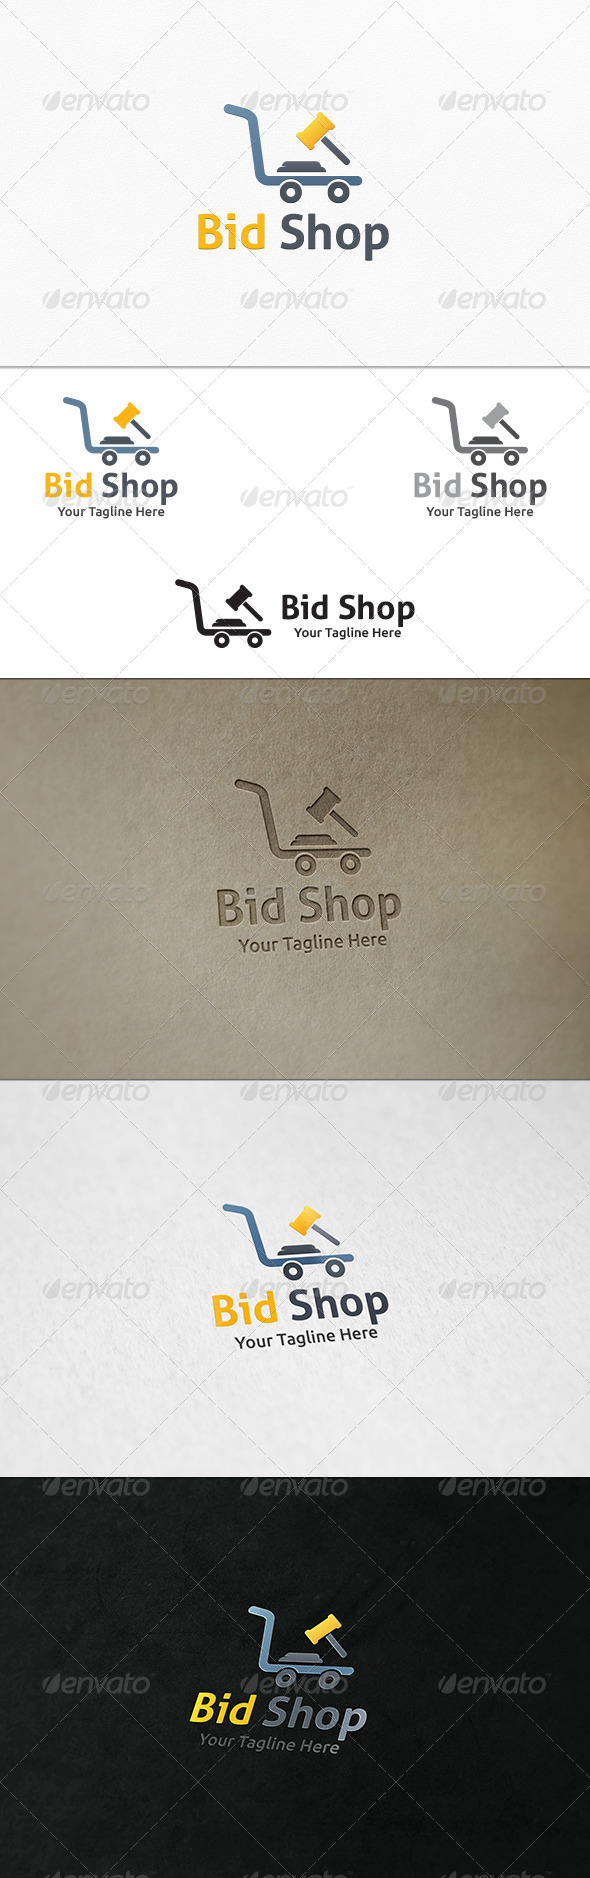 GraphicRiver Bid Shop Logo Template 8049600